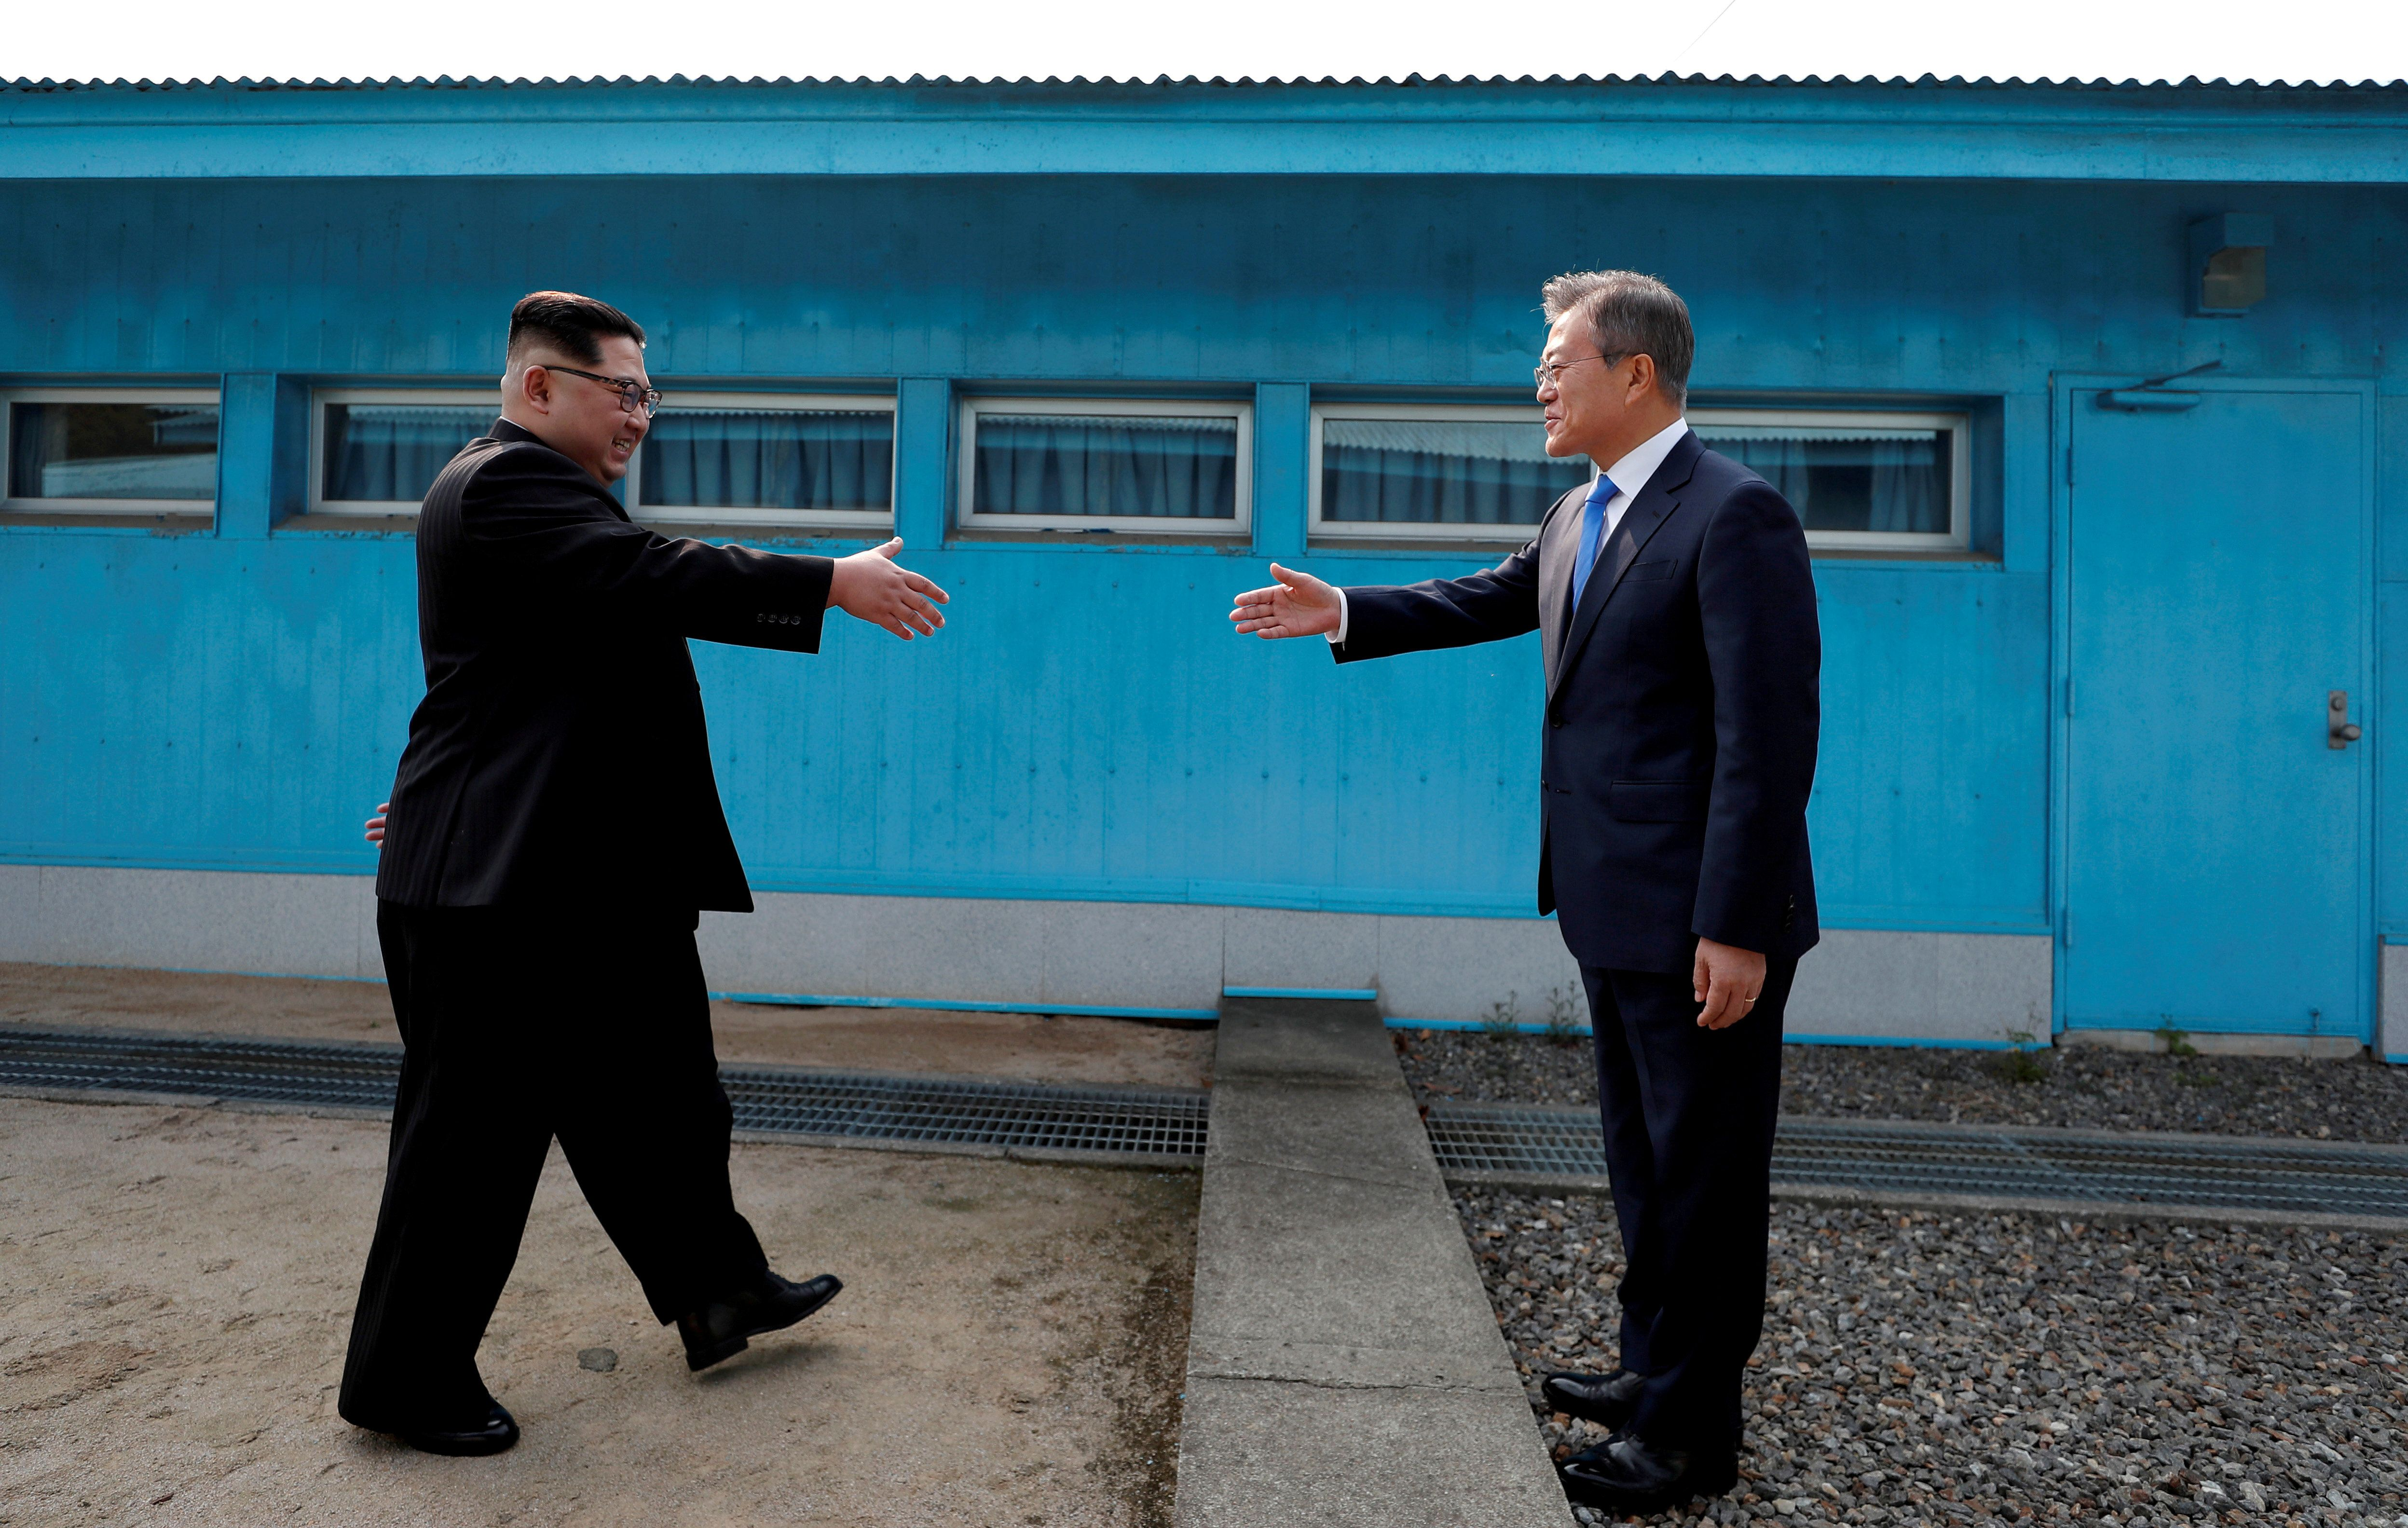 North Korea blows up the relationship. Why?